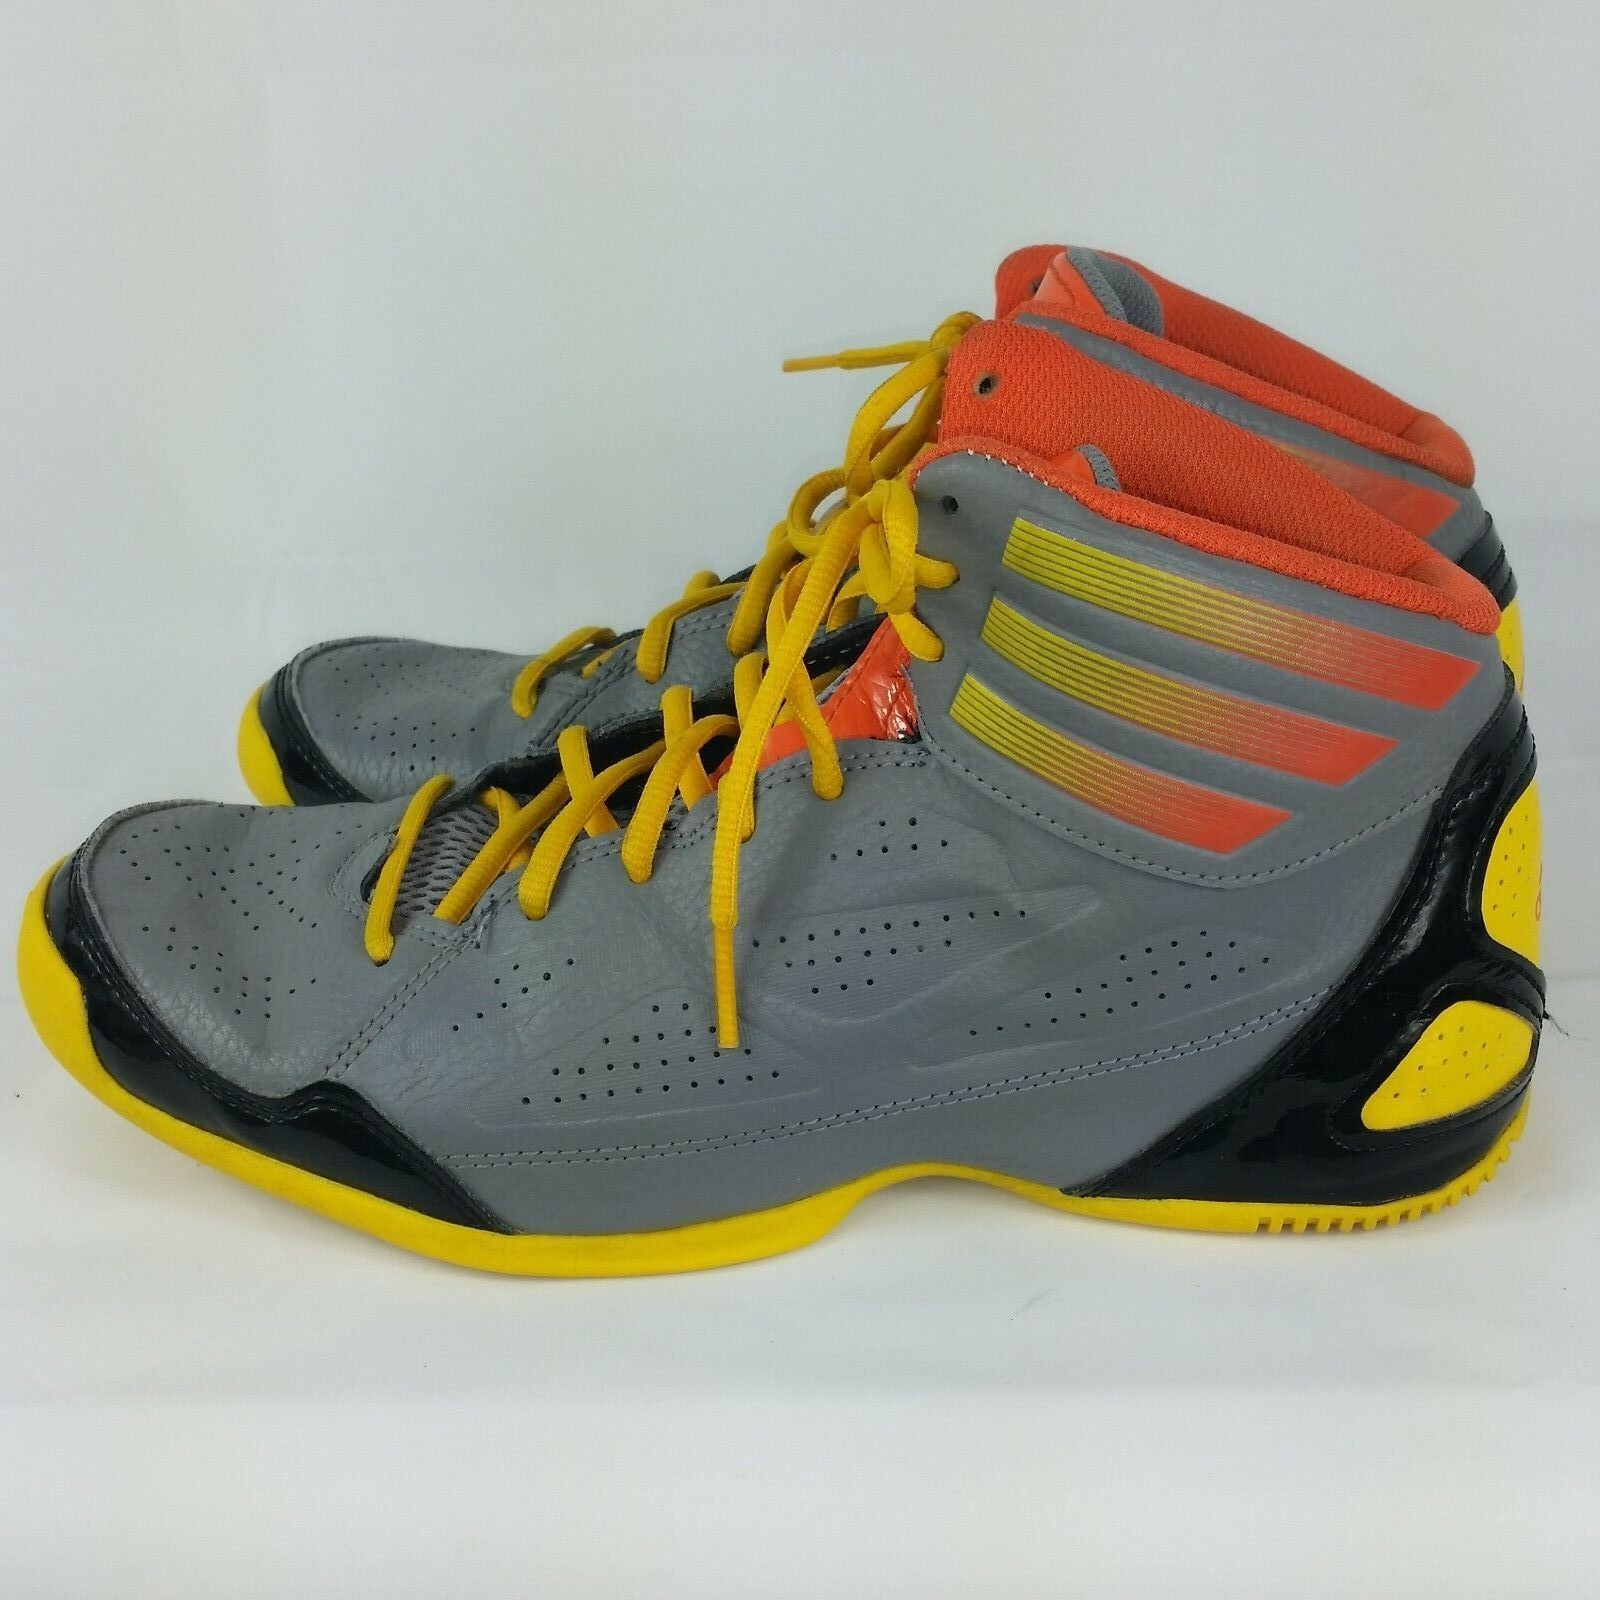 new style 702b4 73d24 preowned Adidas size 7 basketball shoe EUC next level speed high top youth